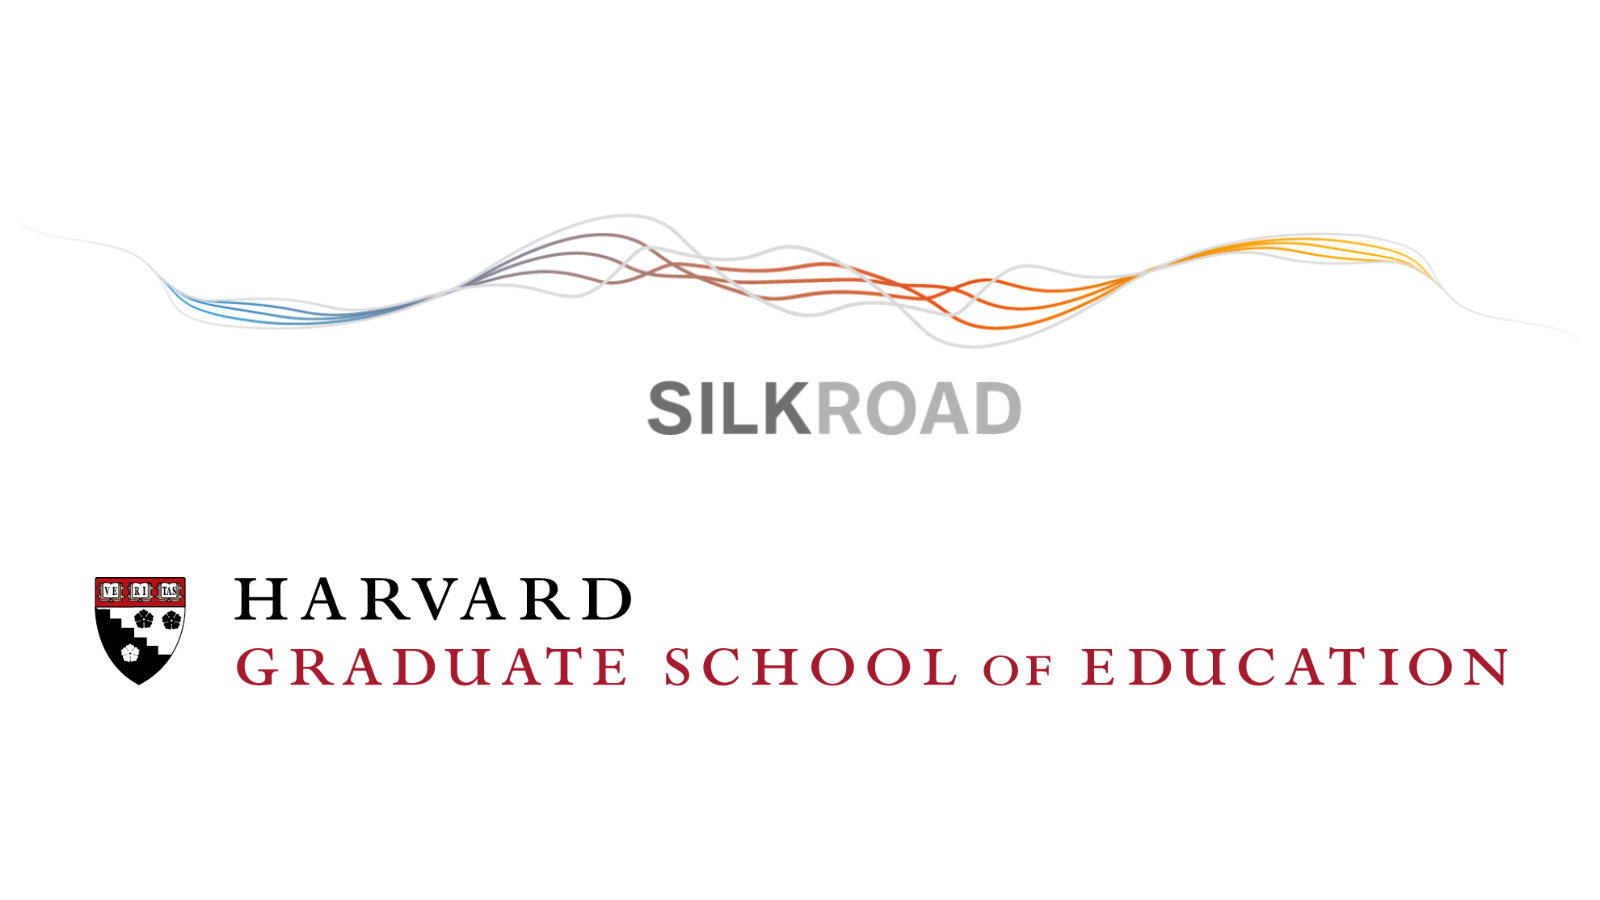 Silkroad Arts and Passion-Driven Learning